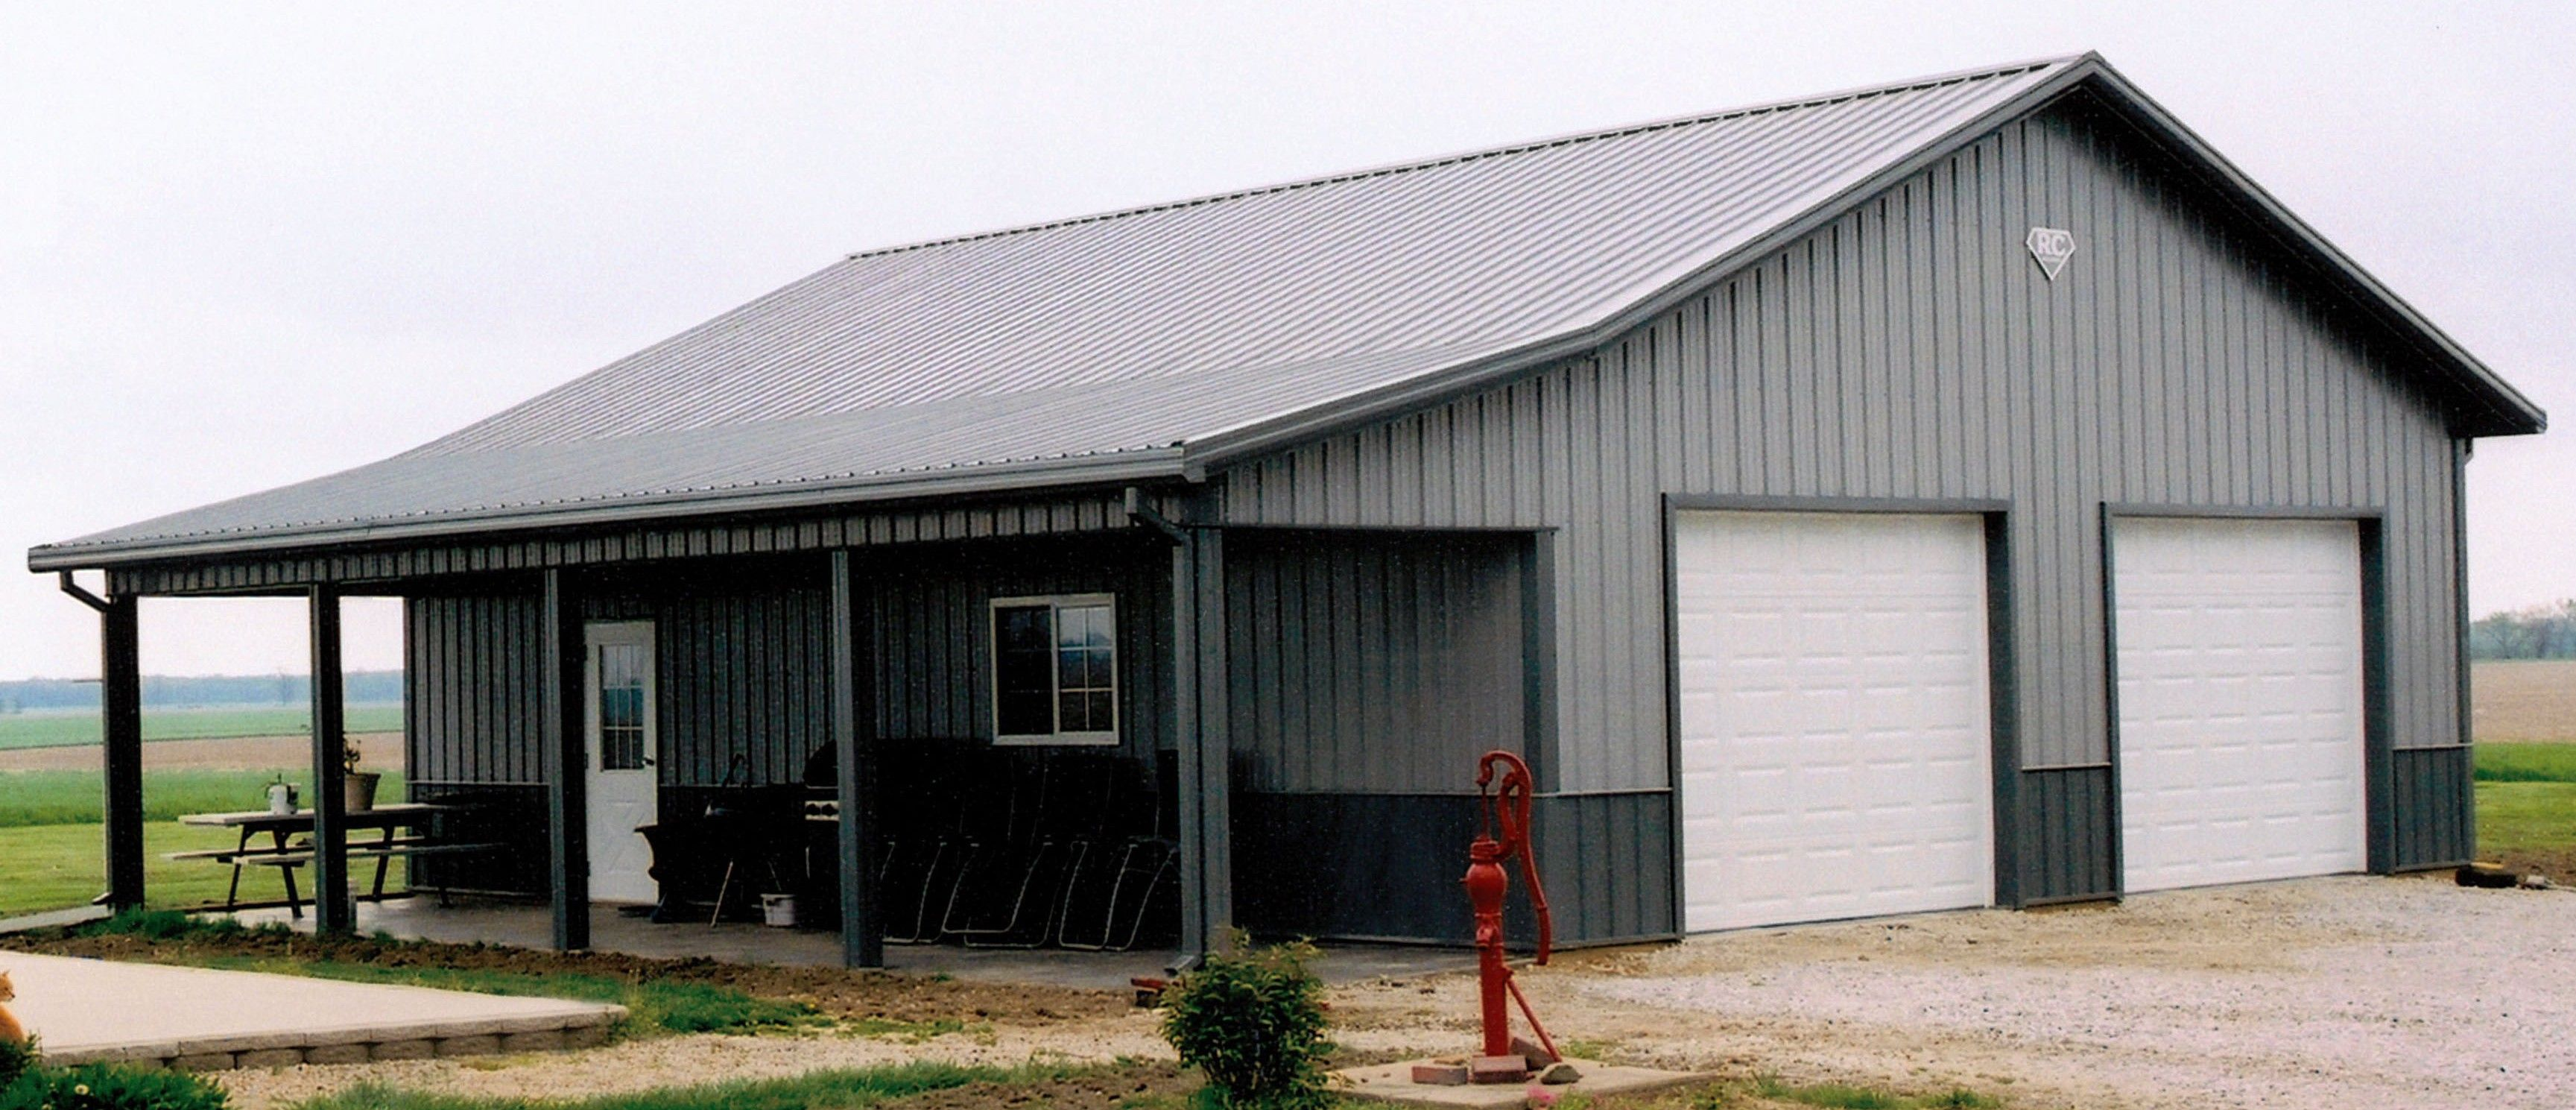 Metal Building Homes Top Pictures Gallery Online: metal barn homes plans